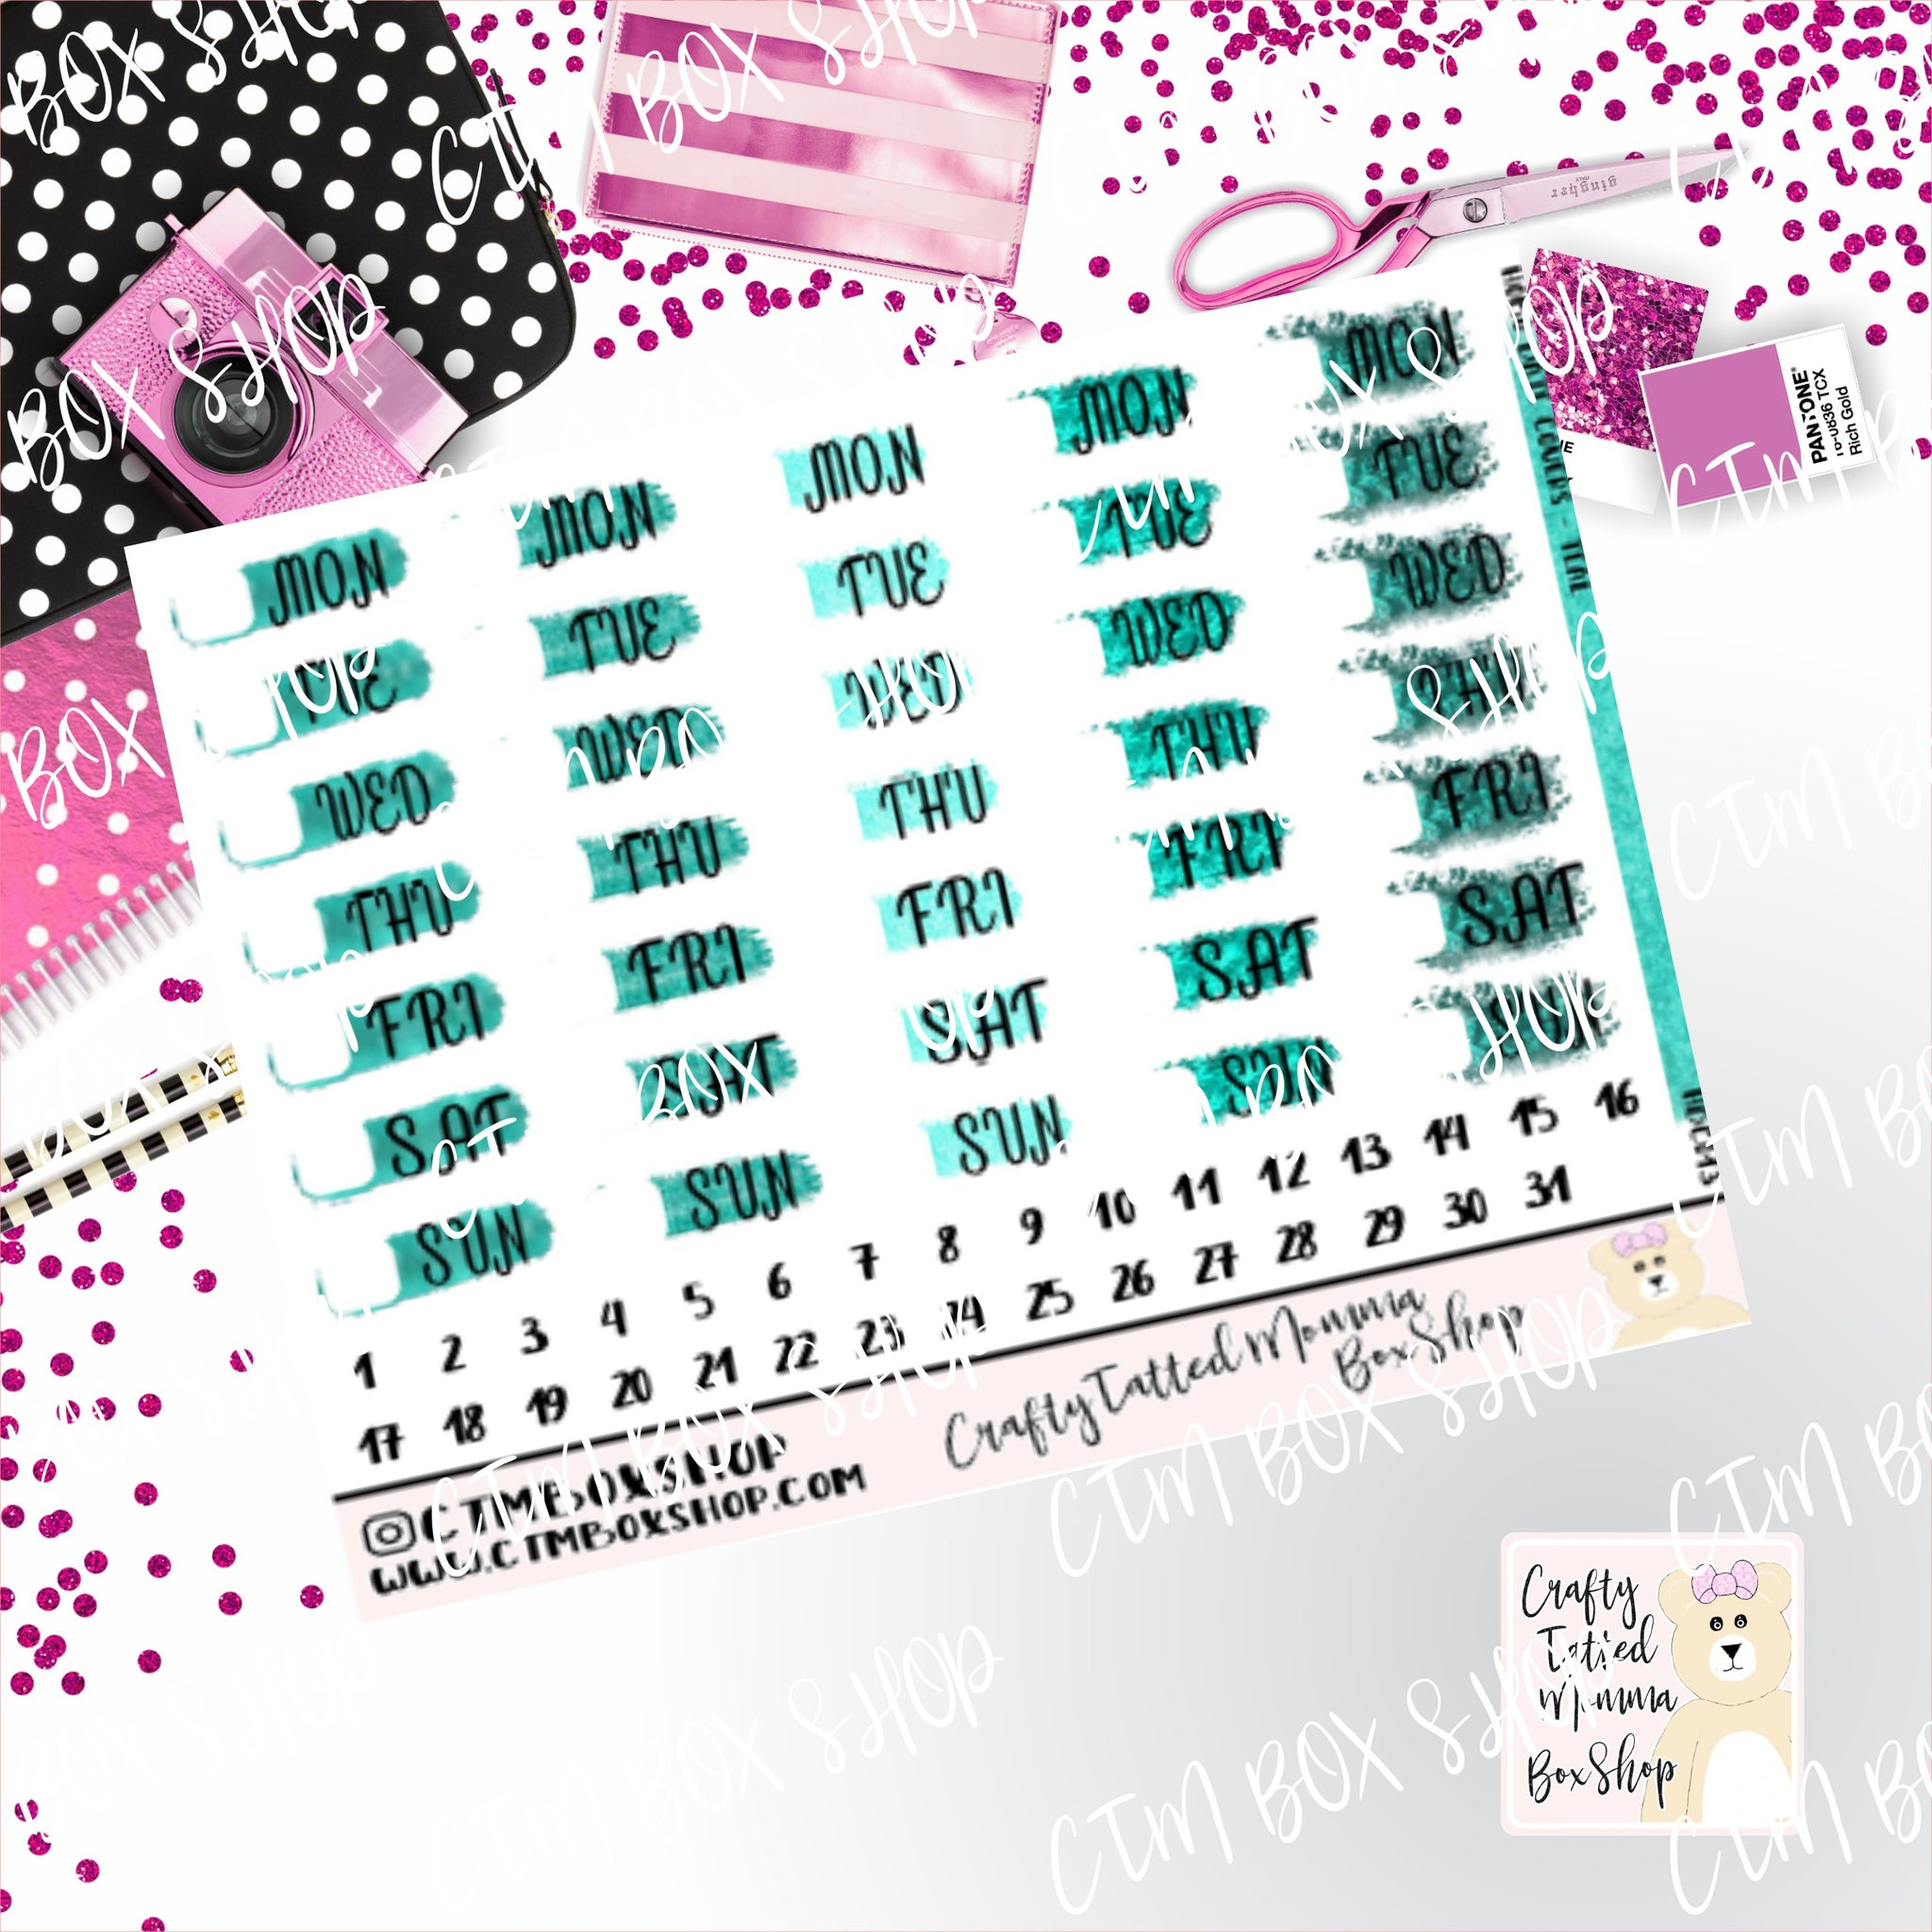 Teal Date Covers Stickers  Planner Stickers   Hobonichi  Techno Weeks   Stickers  Date Covers  Days of the Week